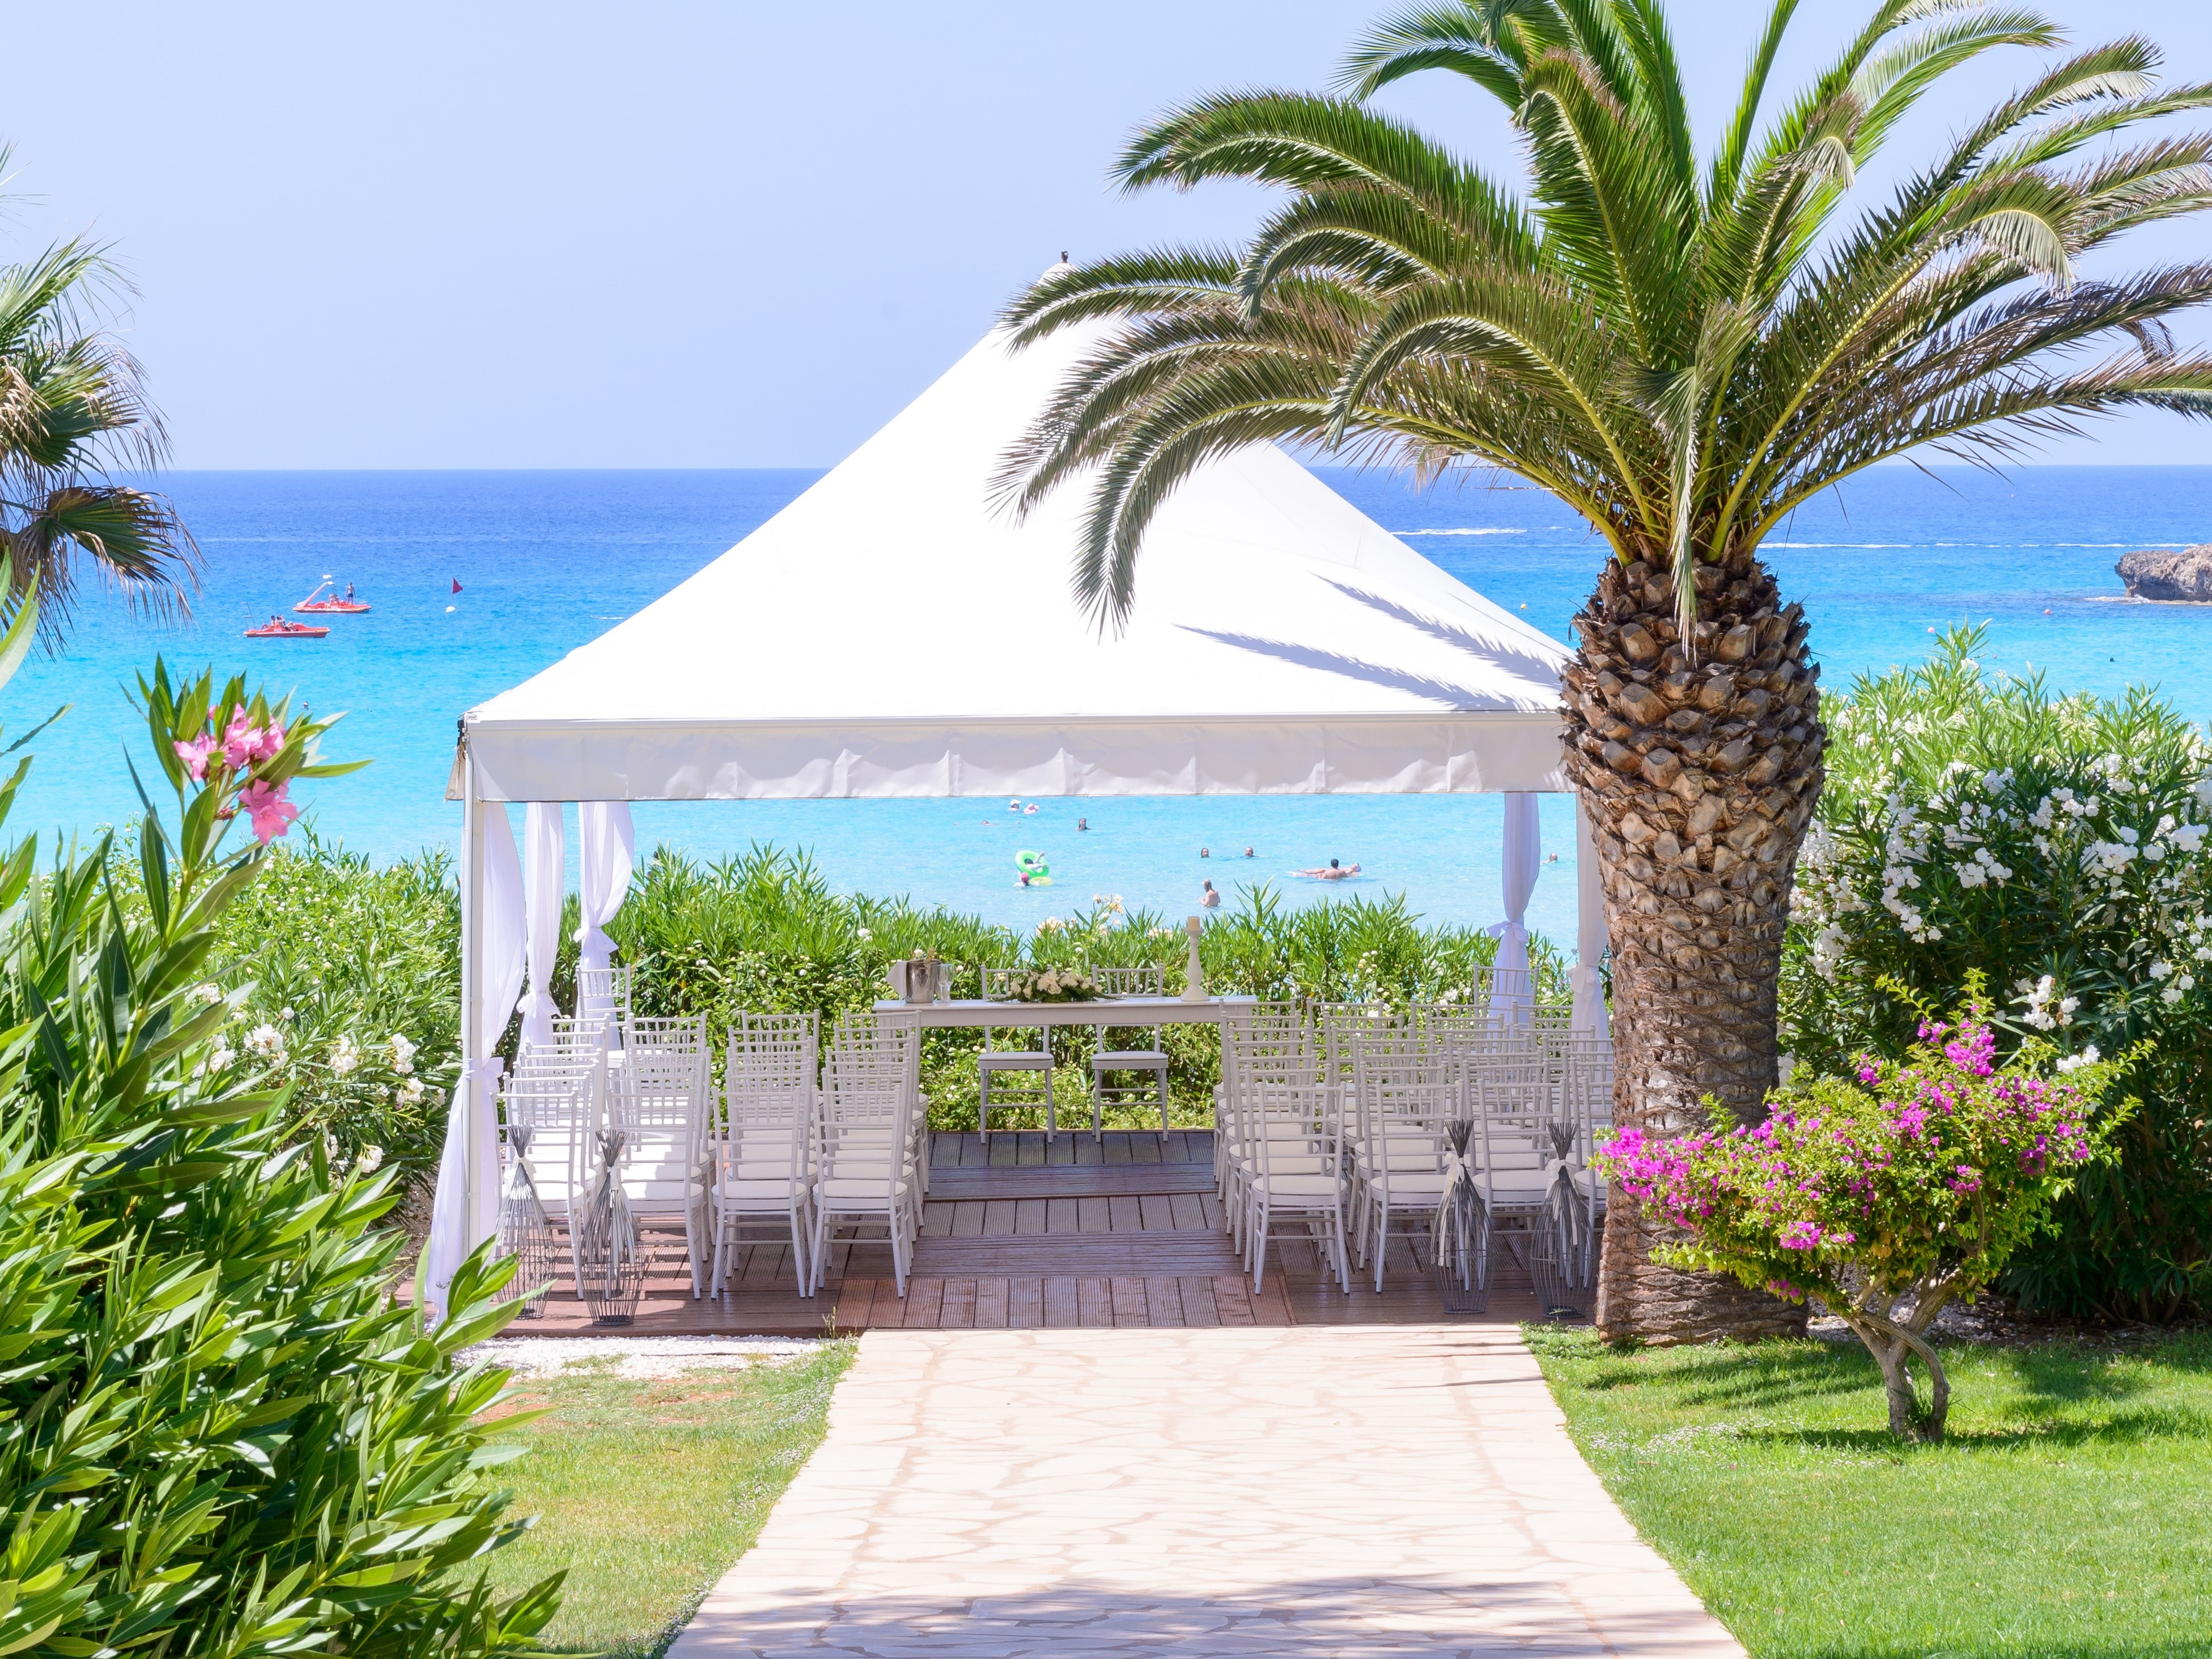 Nissi Beach Resort Is Situated On The Fine Golden Sands Of Bay Its Small Island Offers Shelter To Making A Safe Haven For